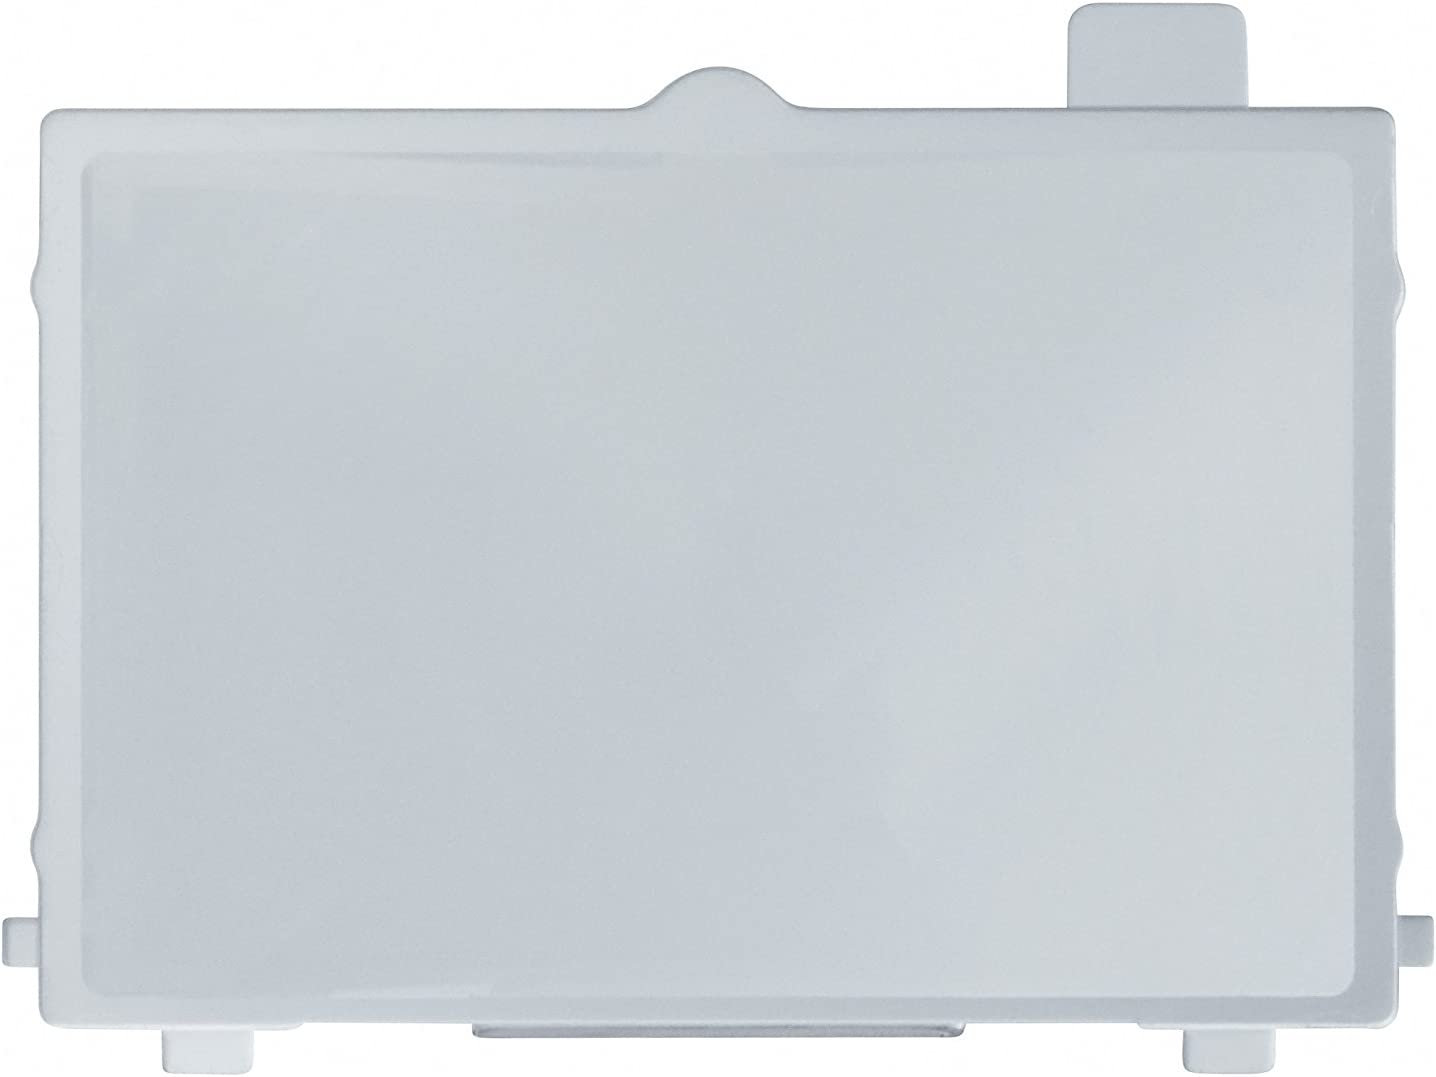 Canon Focusing Eh-S Screen Max Sales for sale 82% OFF